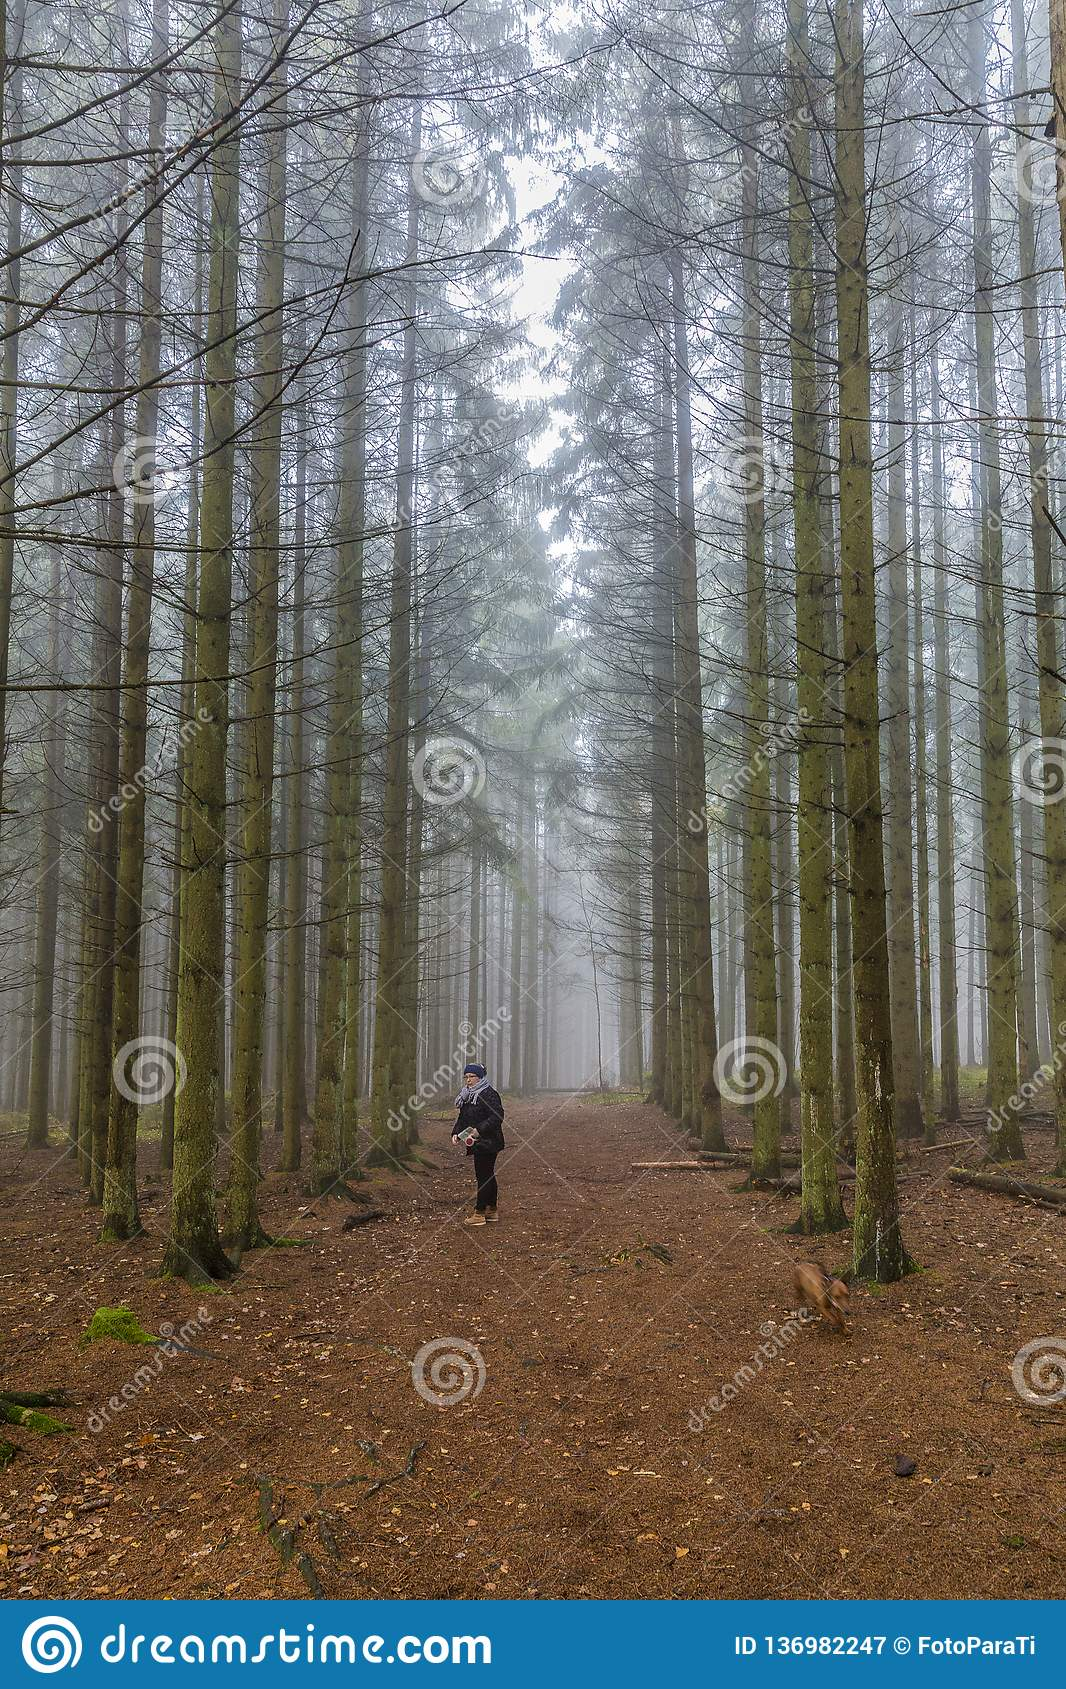 Image of a woman standing on a trail looking for her dog among tall pine trees in the forest